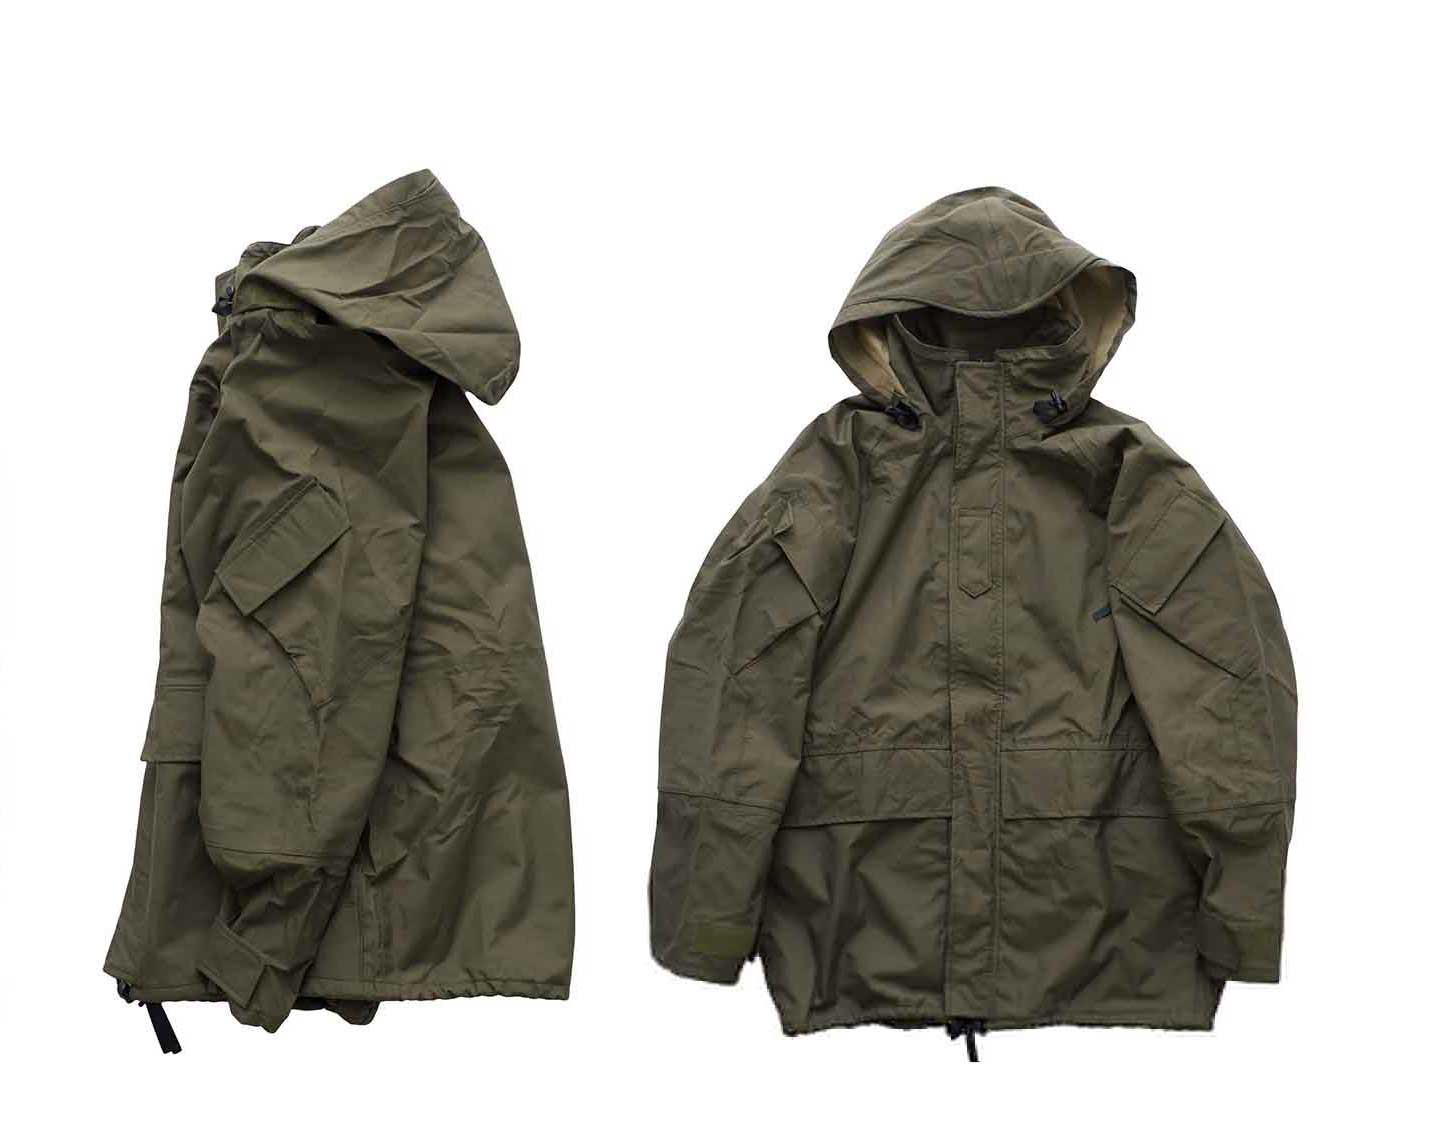 1990 DEAD STOCK US ARMY EXTENDED COLD WEATHER SYSTEM PARKA OLIVE 2